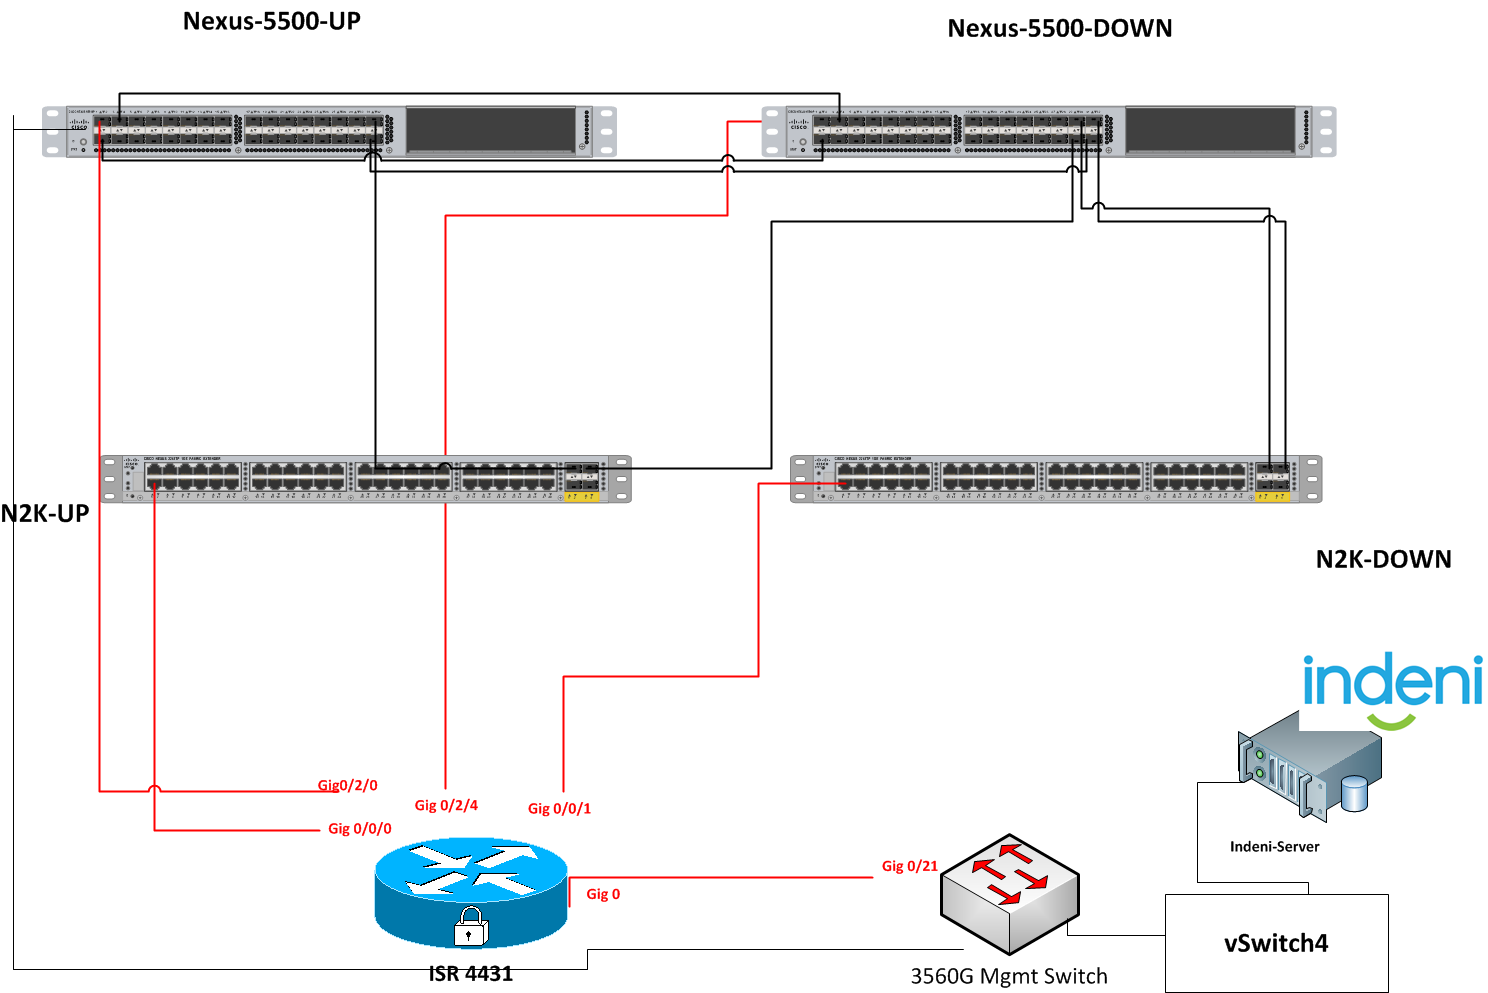 Deployment of the Cisco Nexus FEX technology and analysis by Indeni